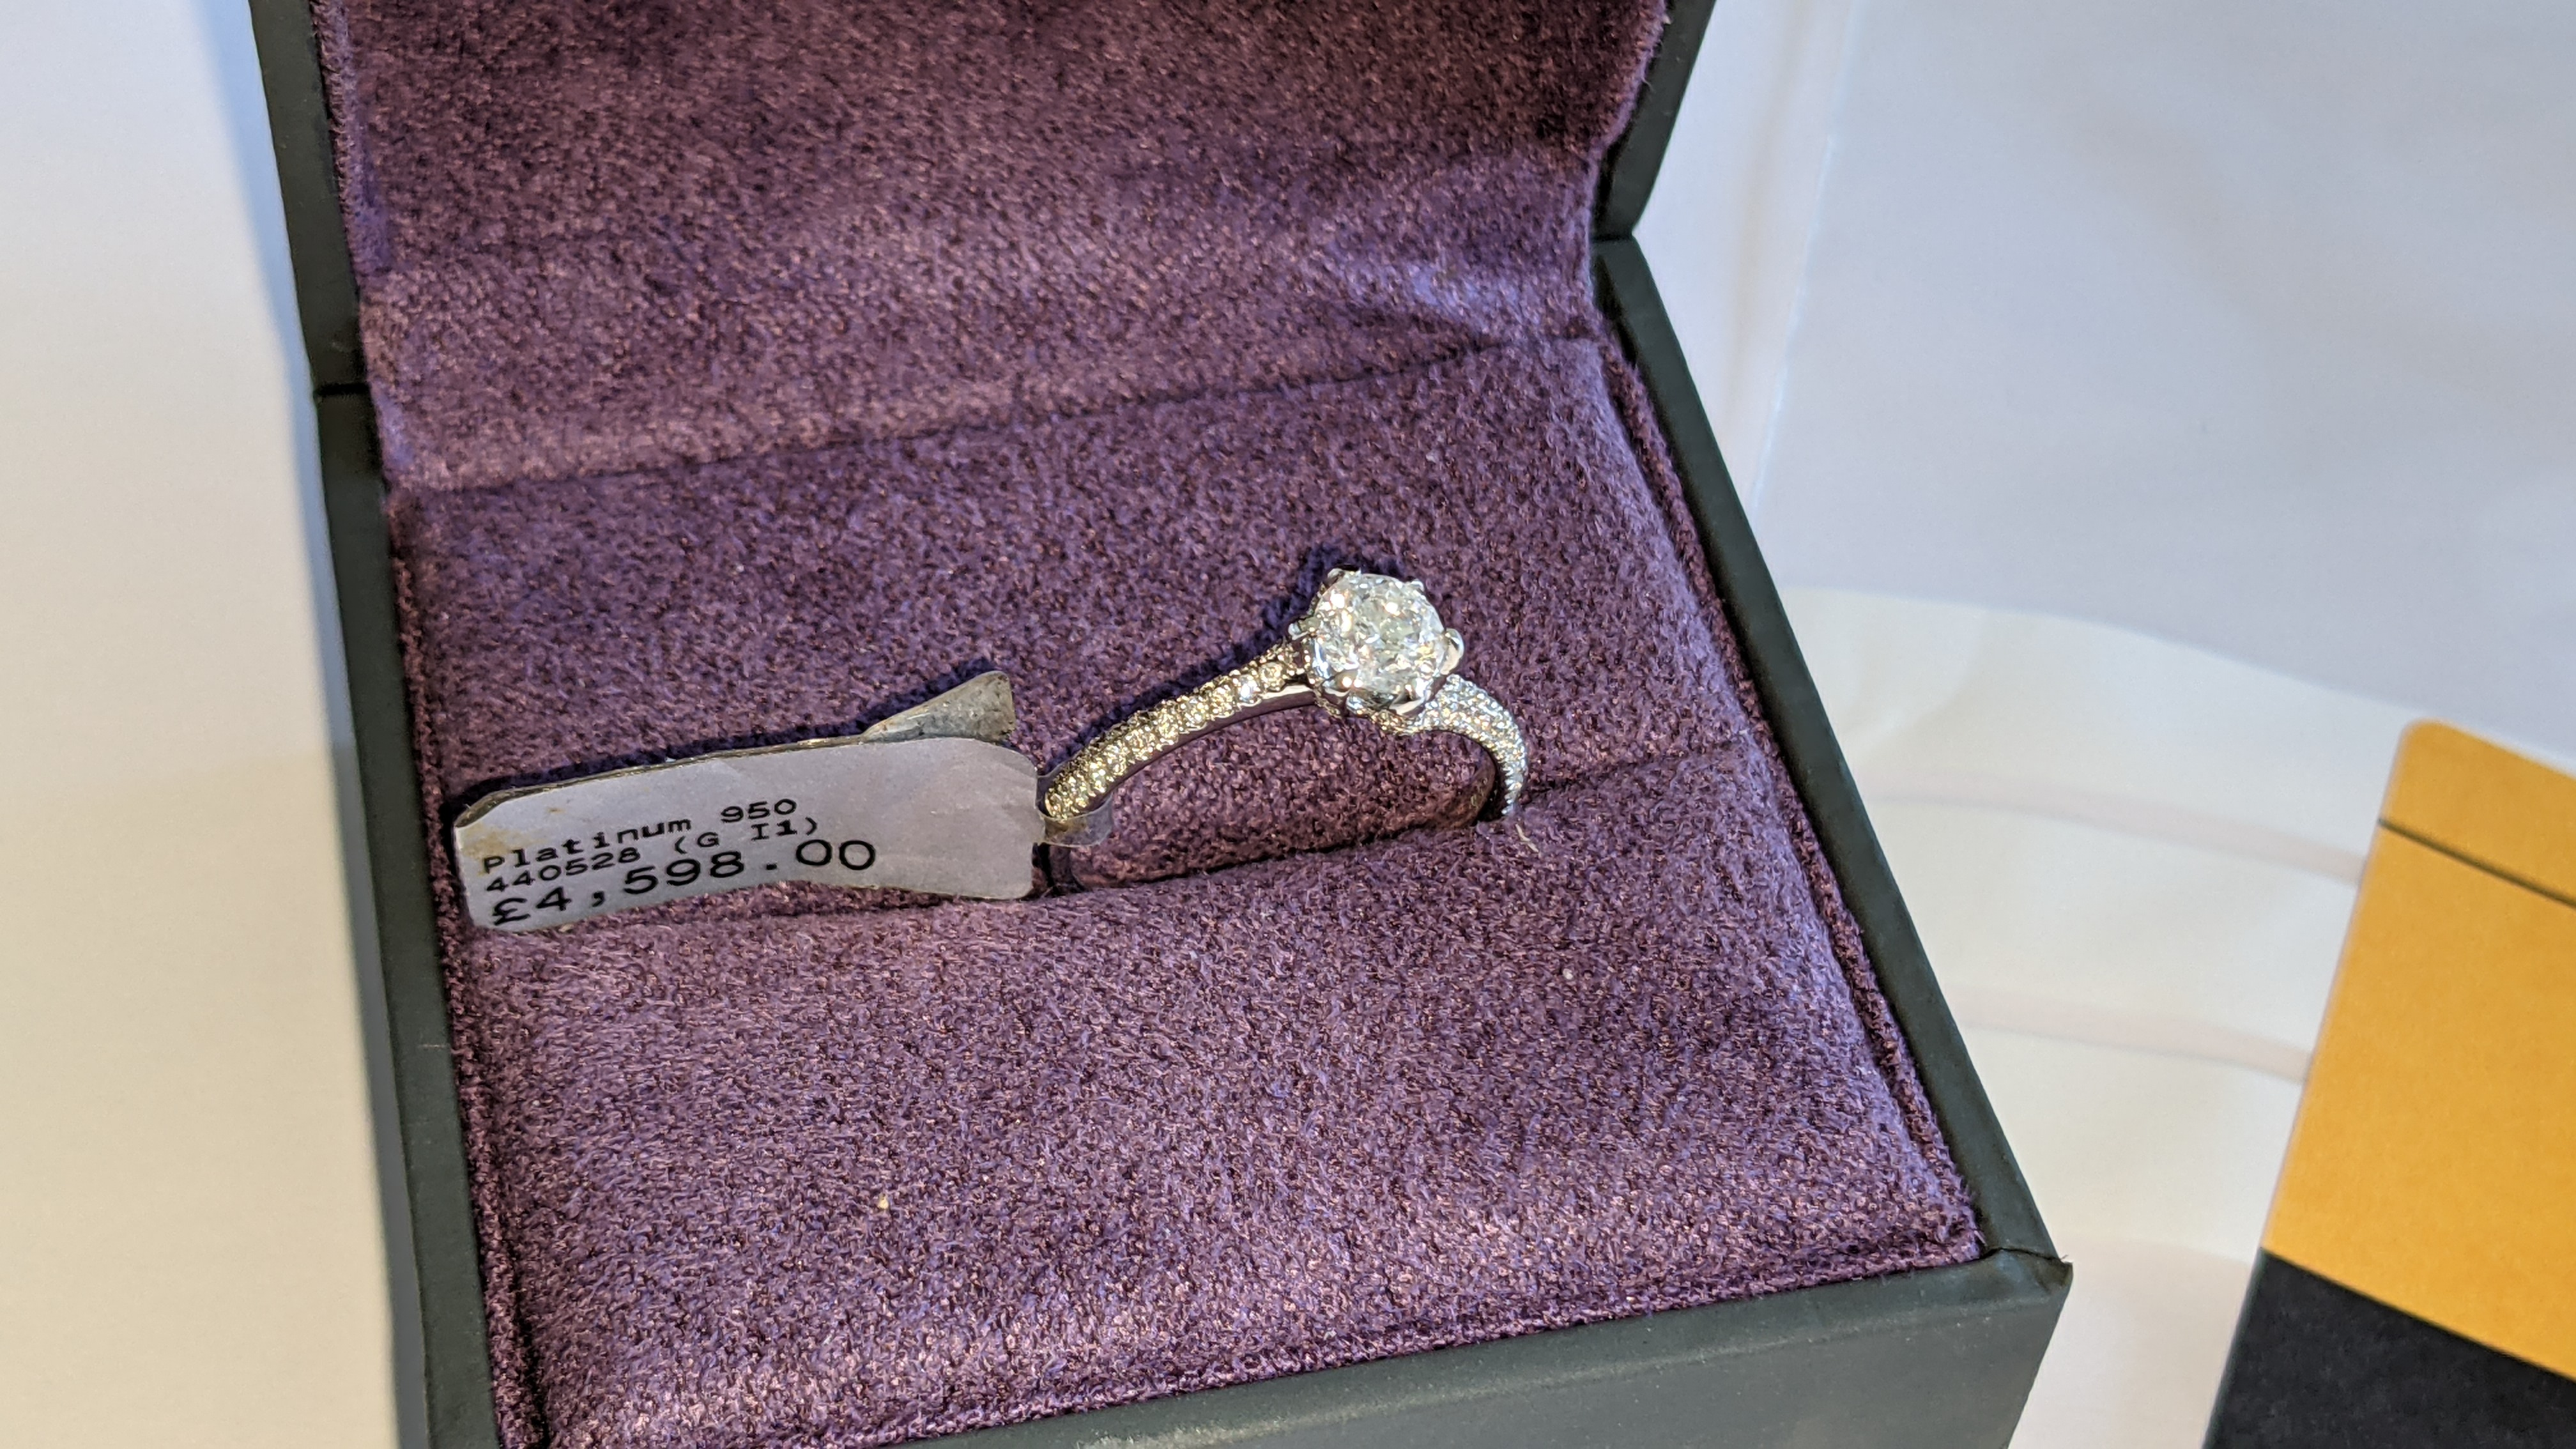 Platinum 950 diamond ring with 0.55ct central stone & 0.348ct of smaller stones on the shoulders. RR - Image 3 of 16